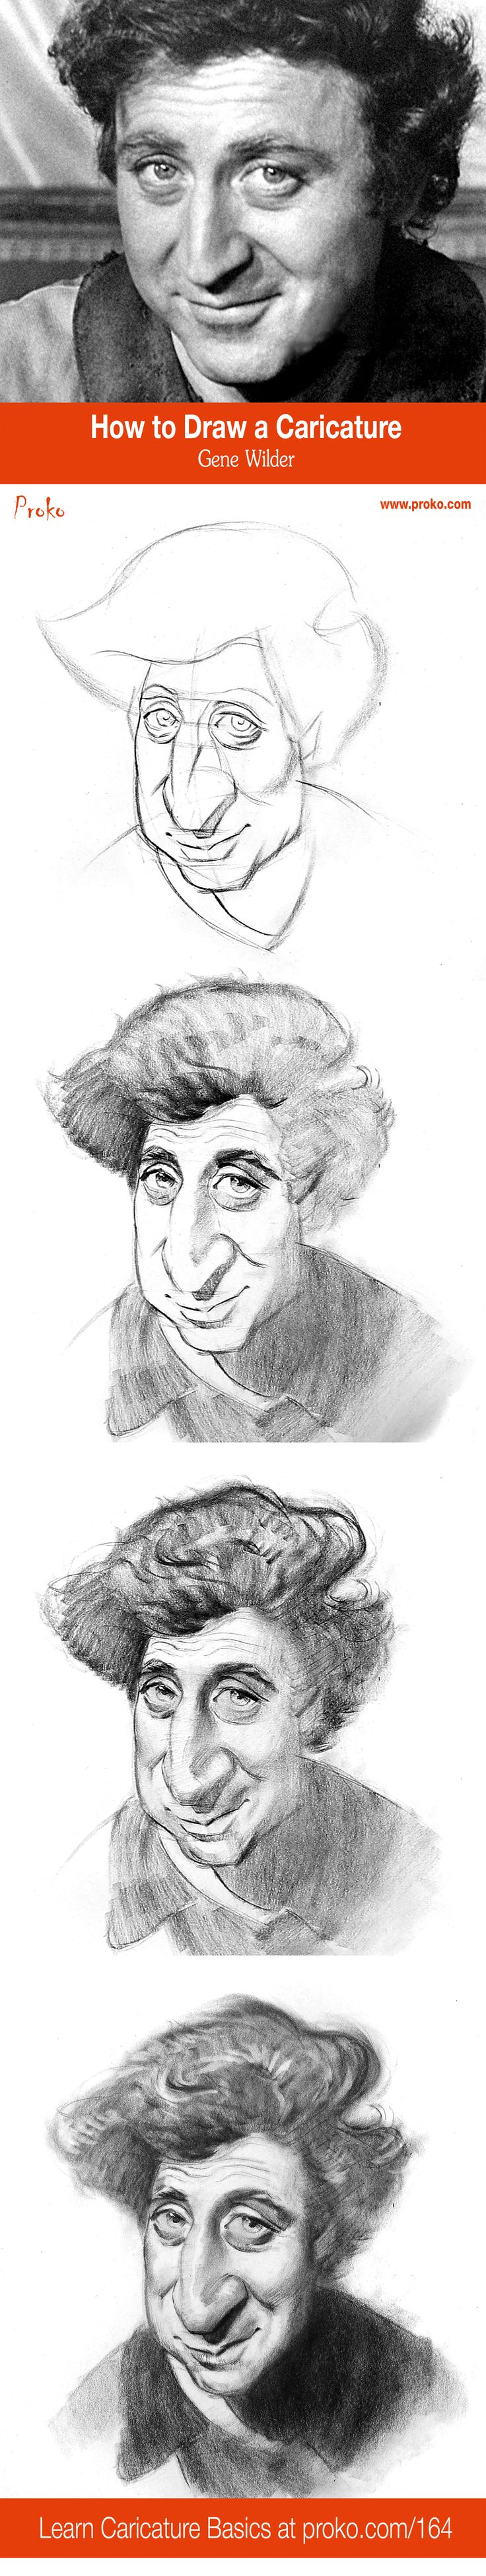 How To Draw Caricatures - Free downloads and reviews ...